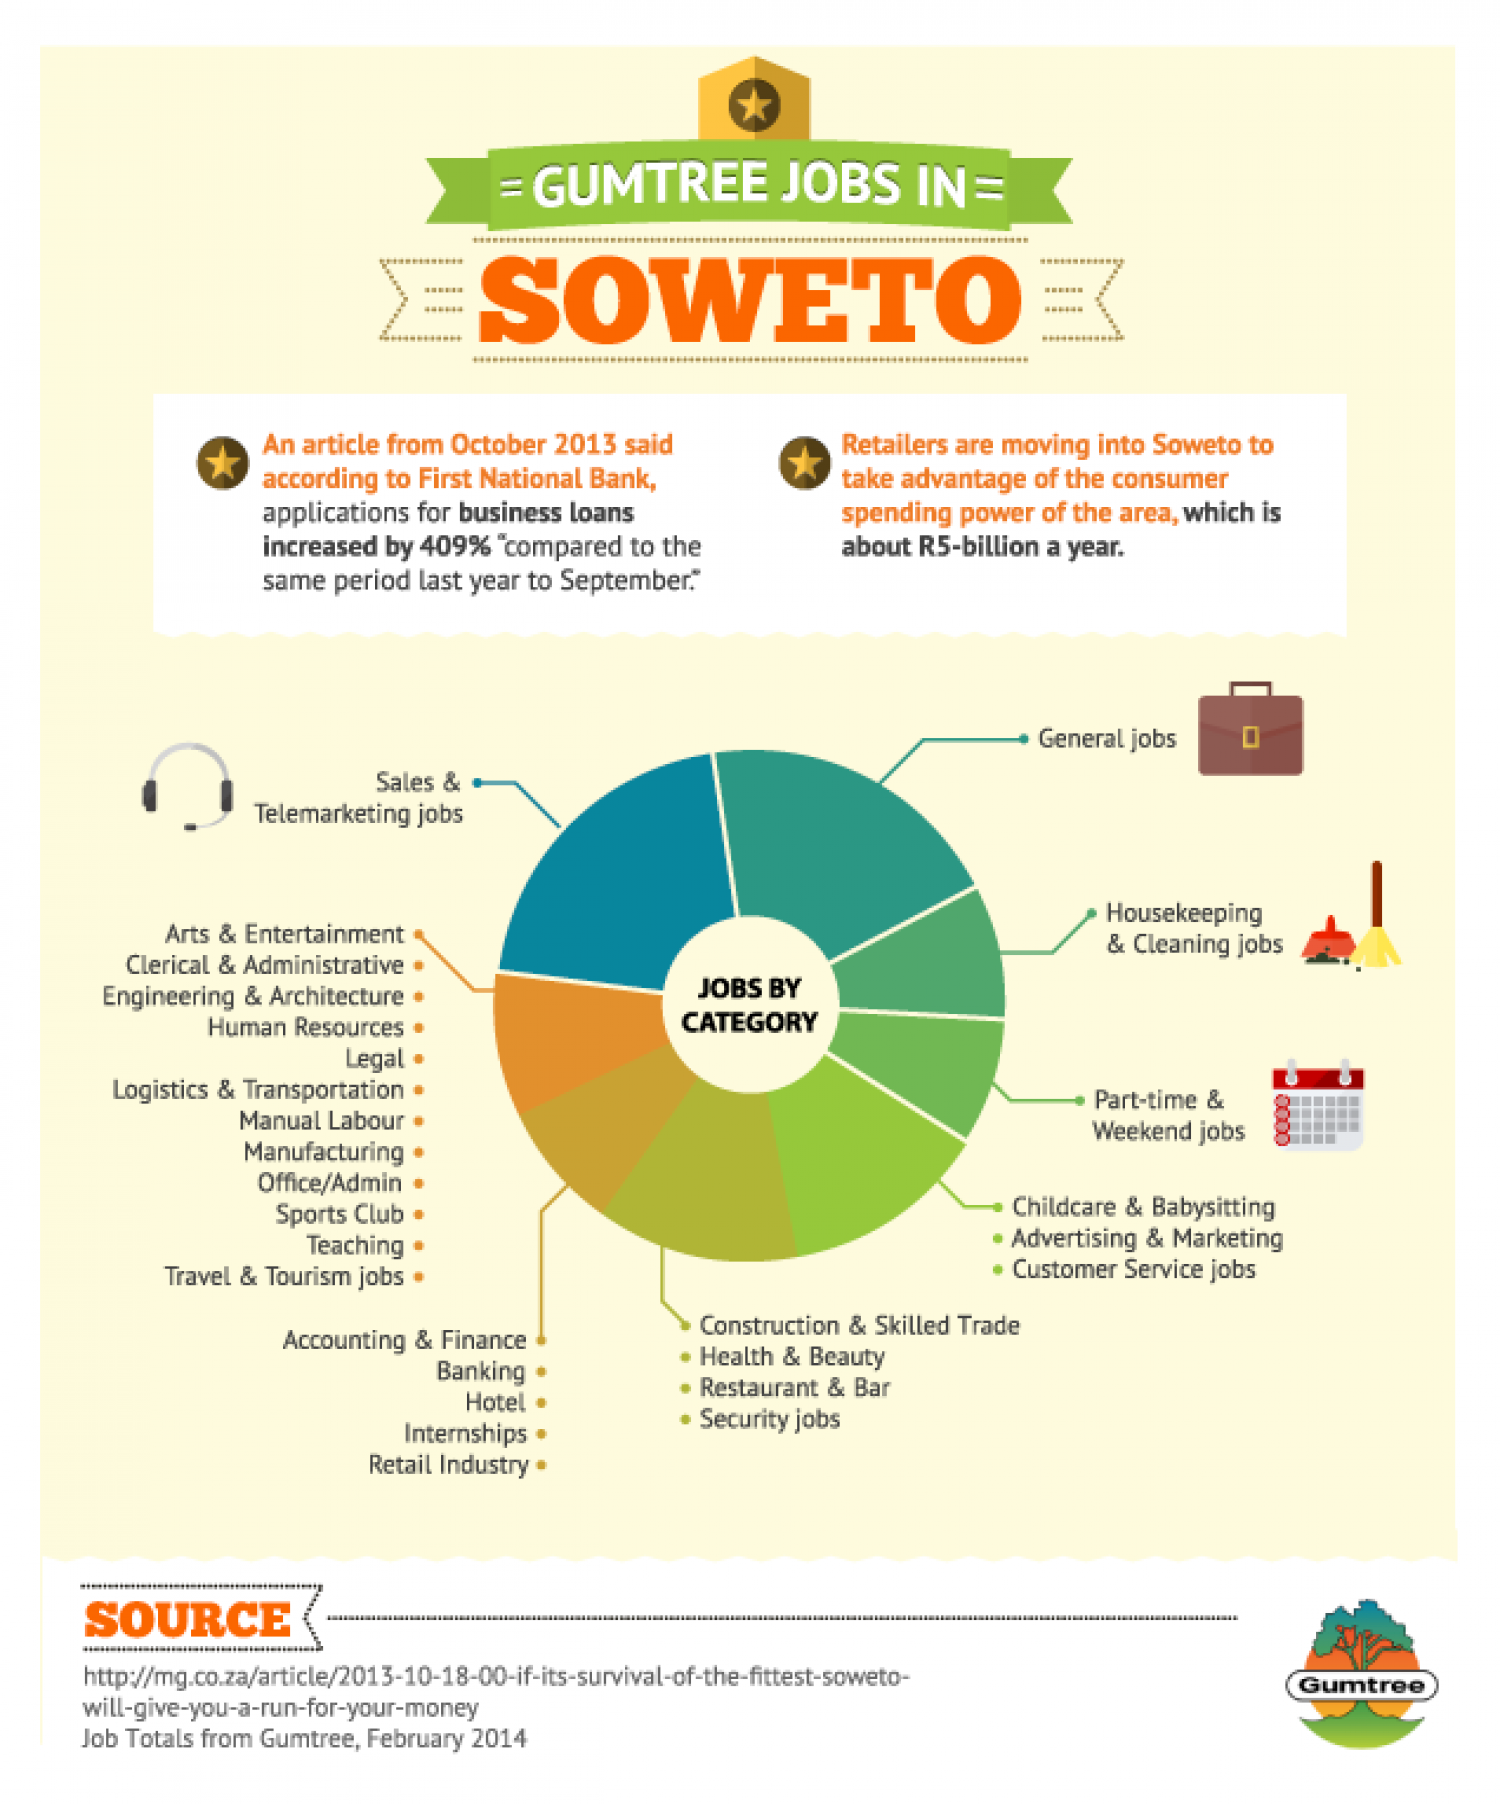 Gumtree Jobs in Soweto | Visual ly